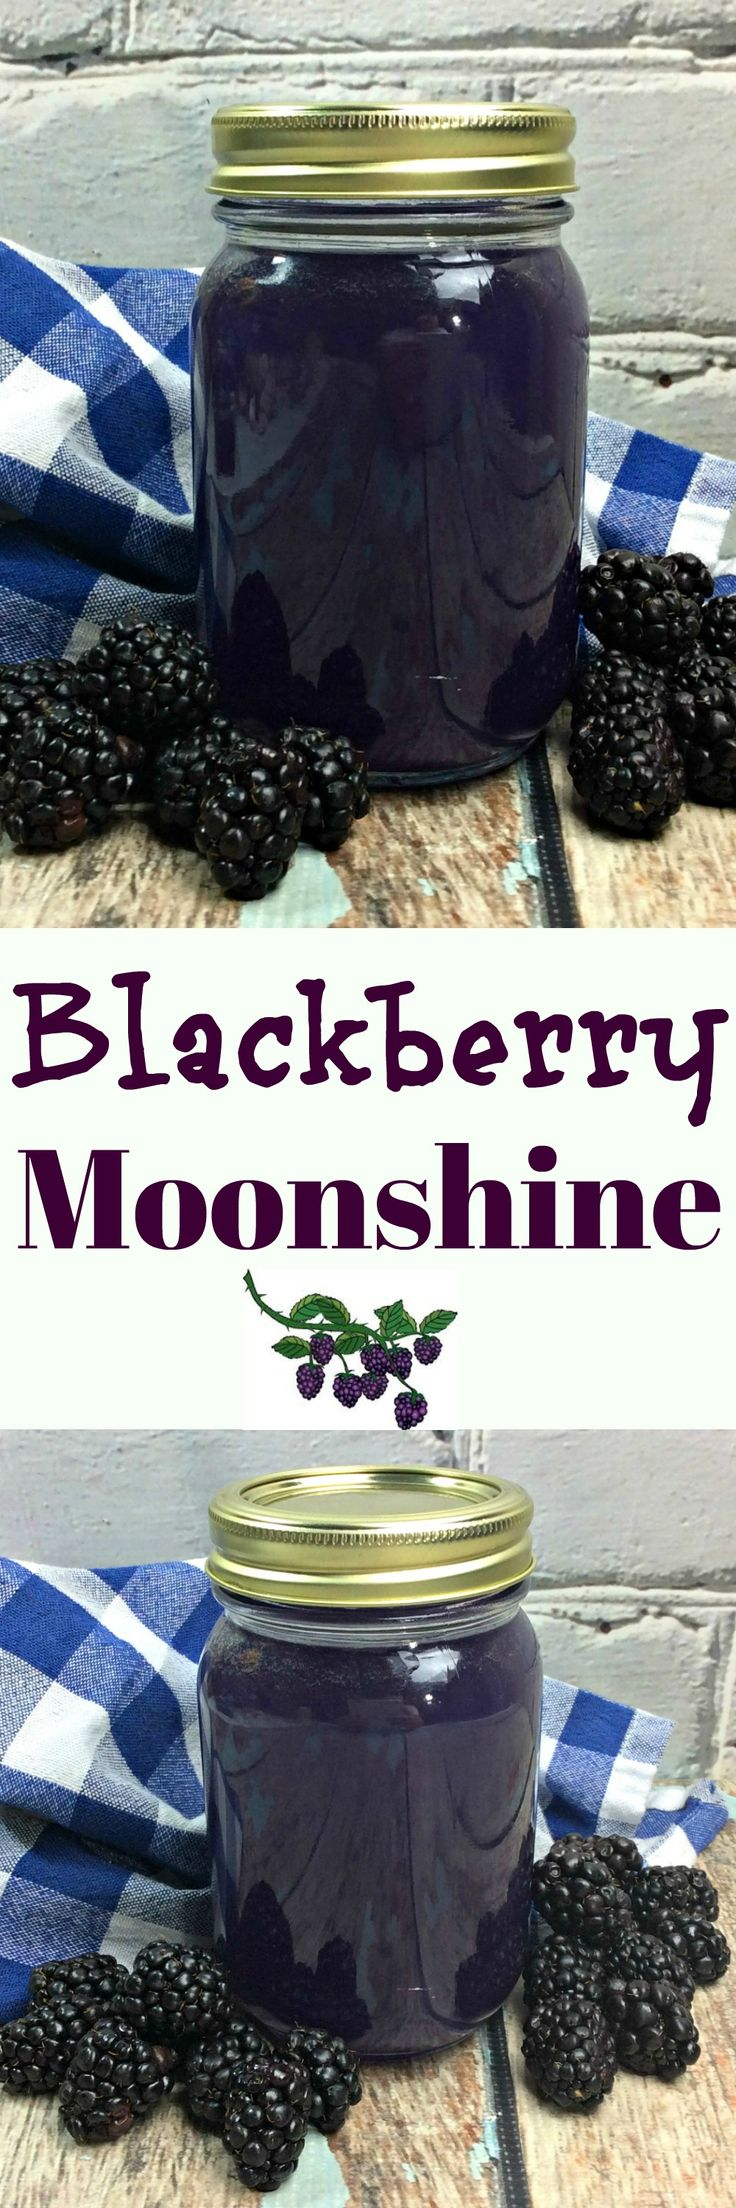 Blackberry Moonshine!